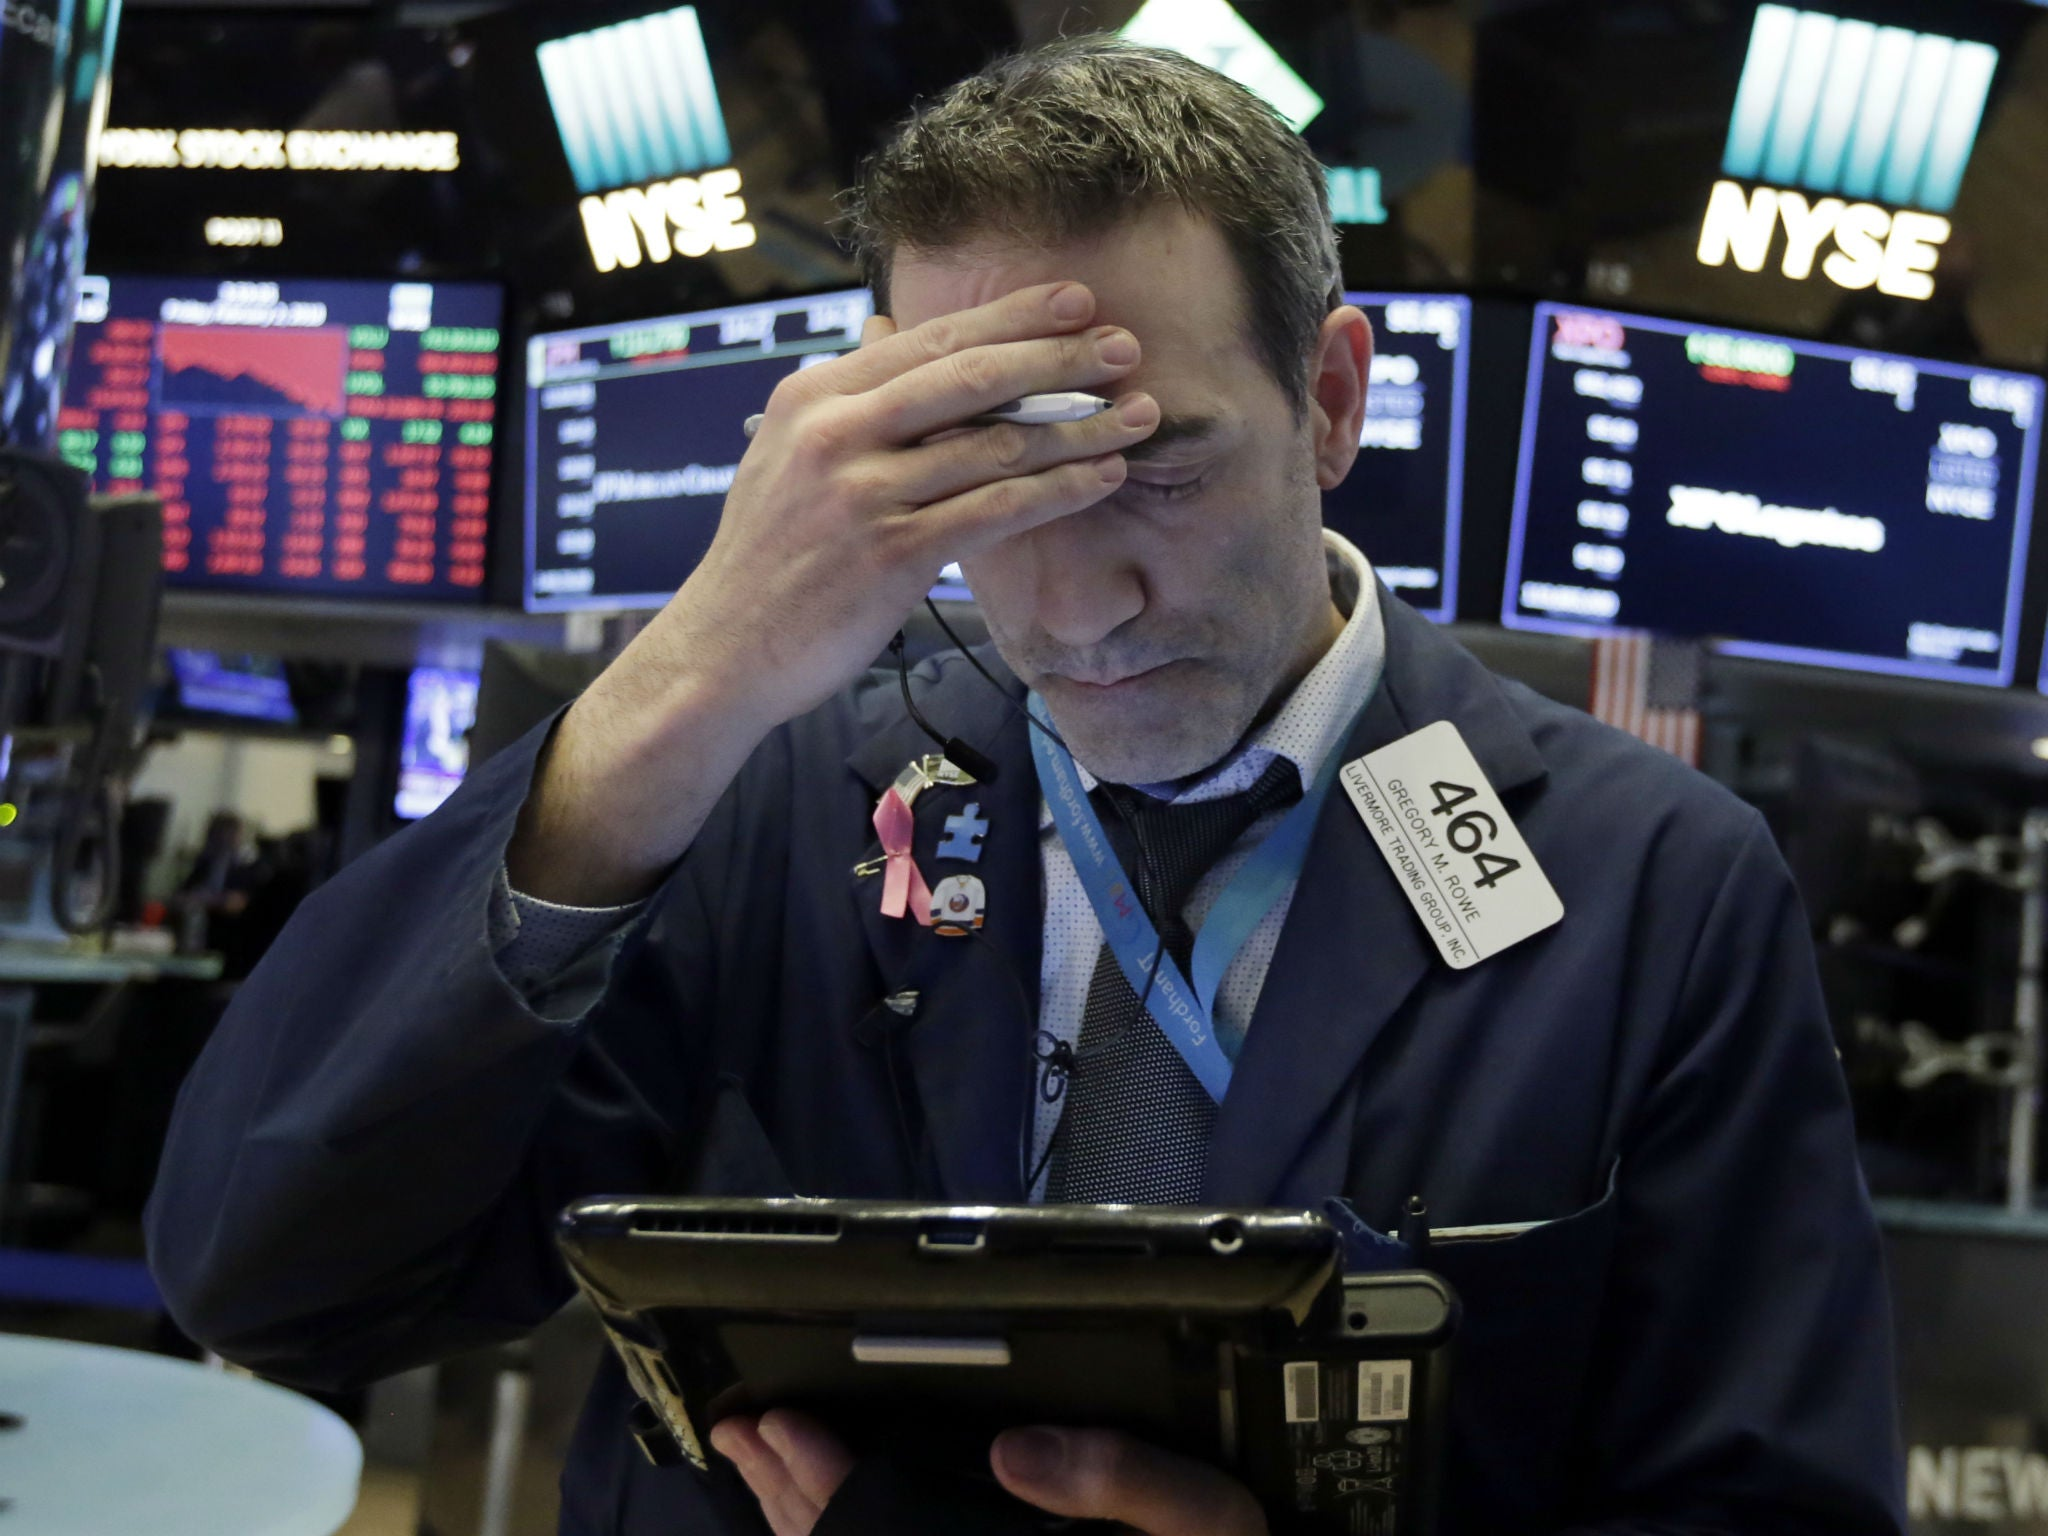 Dow Jones hit by biggest single-day points drop ever | The